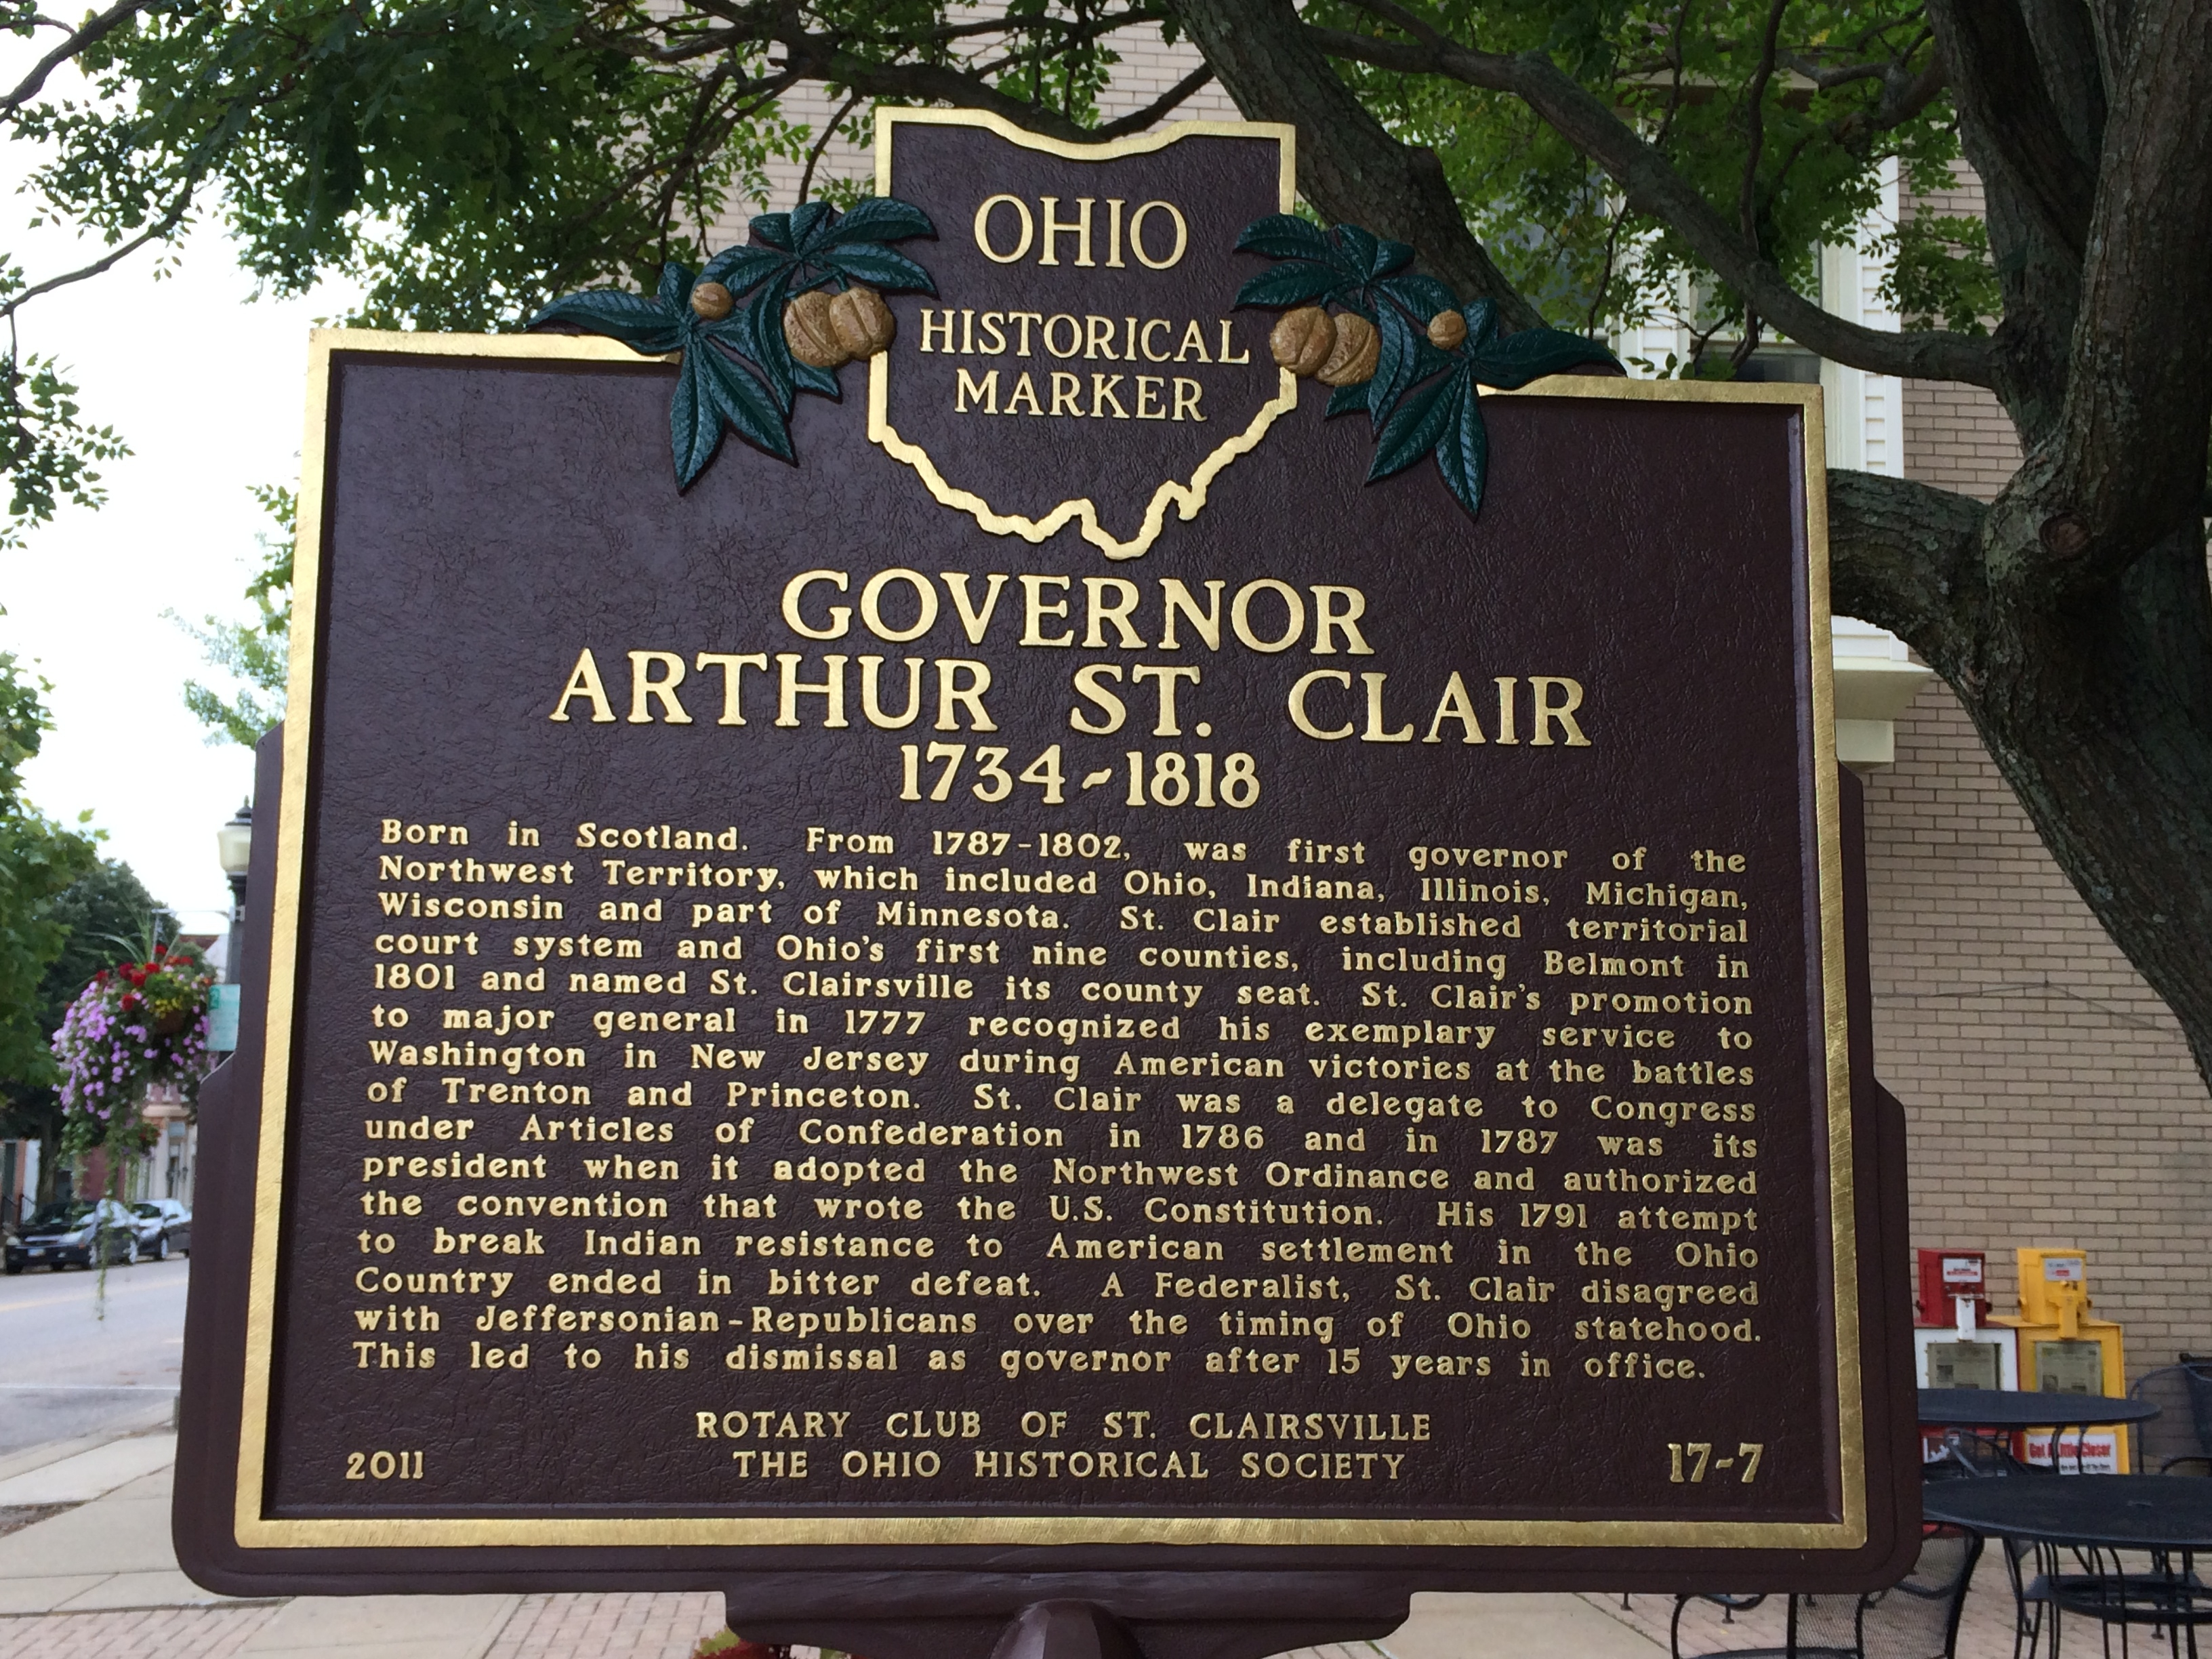 Governor Arthur St. Clair 1734-1818 Marker